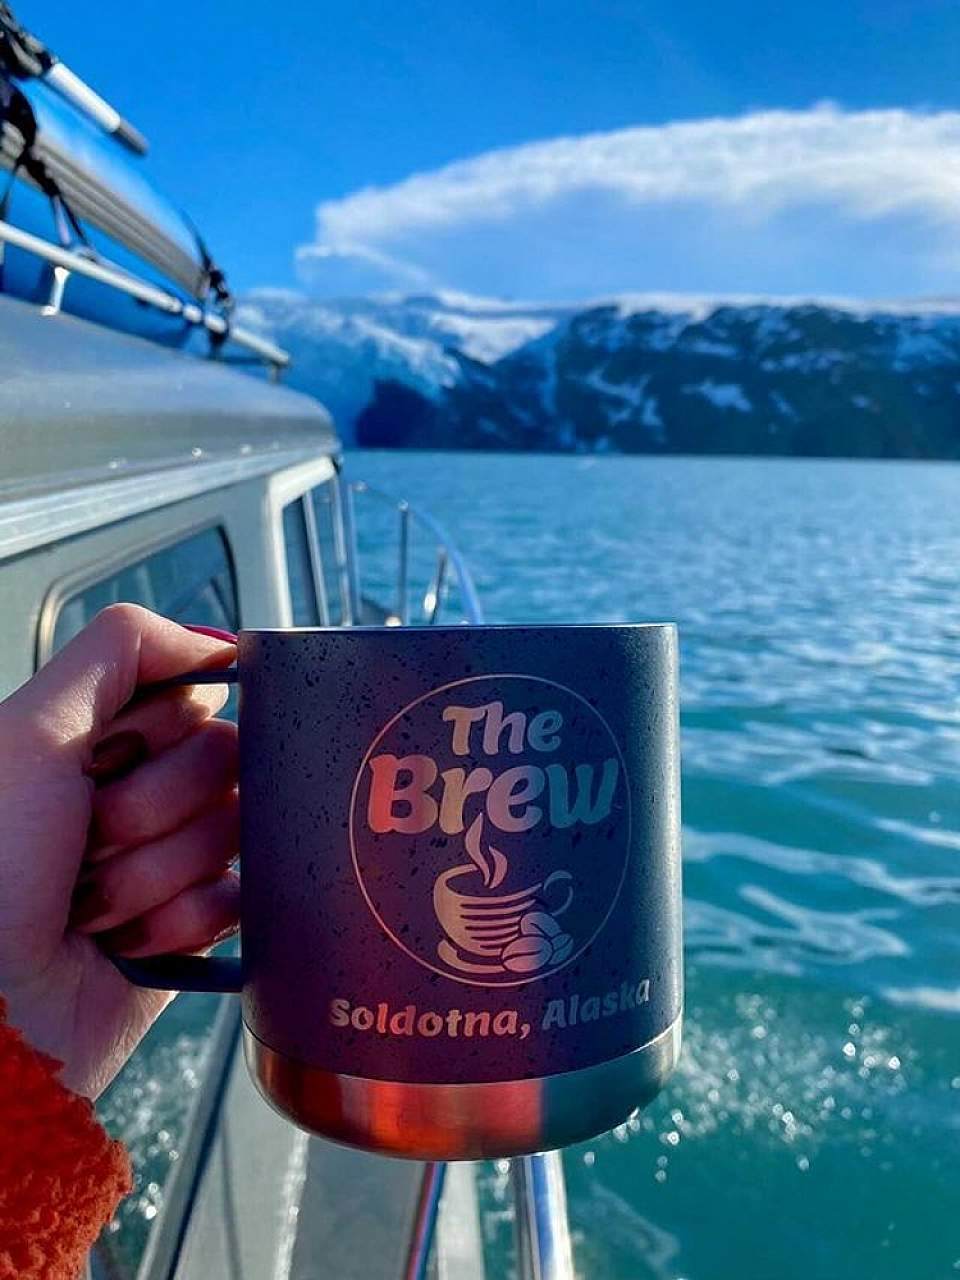 The Brew in Soldotna Alaska offers 32-ounce cups of coffee, iced tea and tropical green ice tea